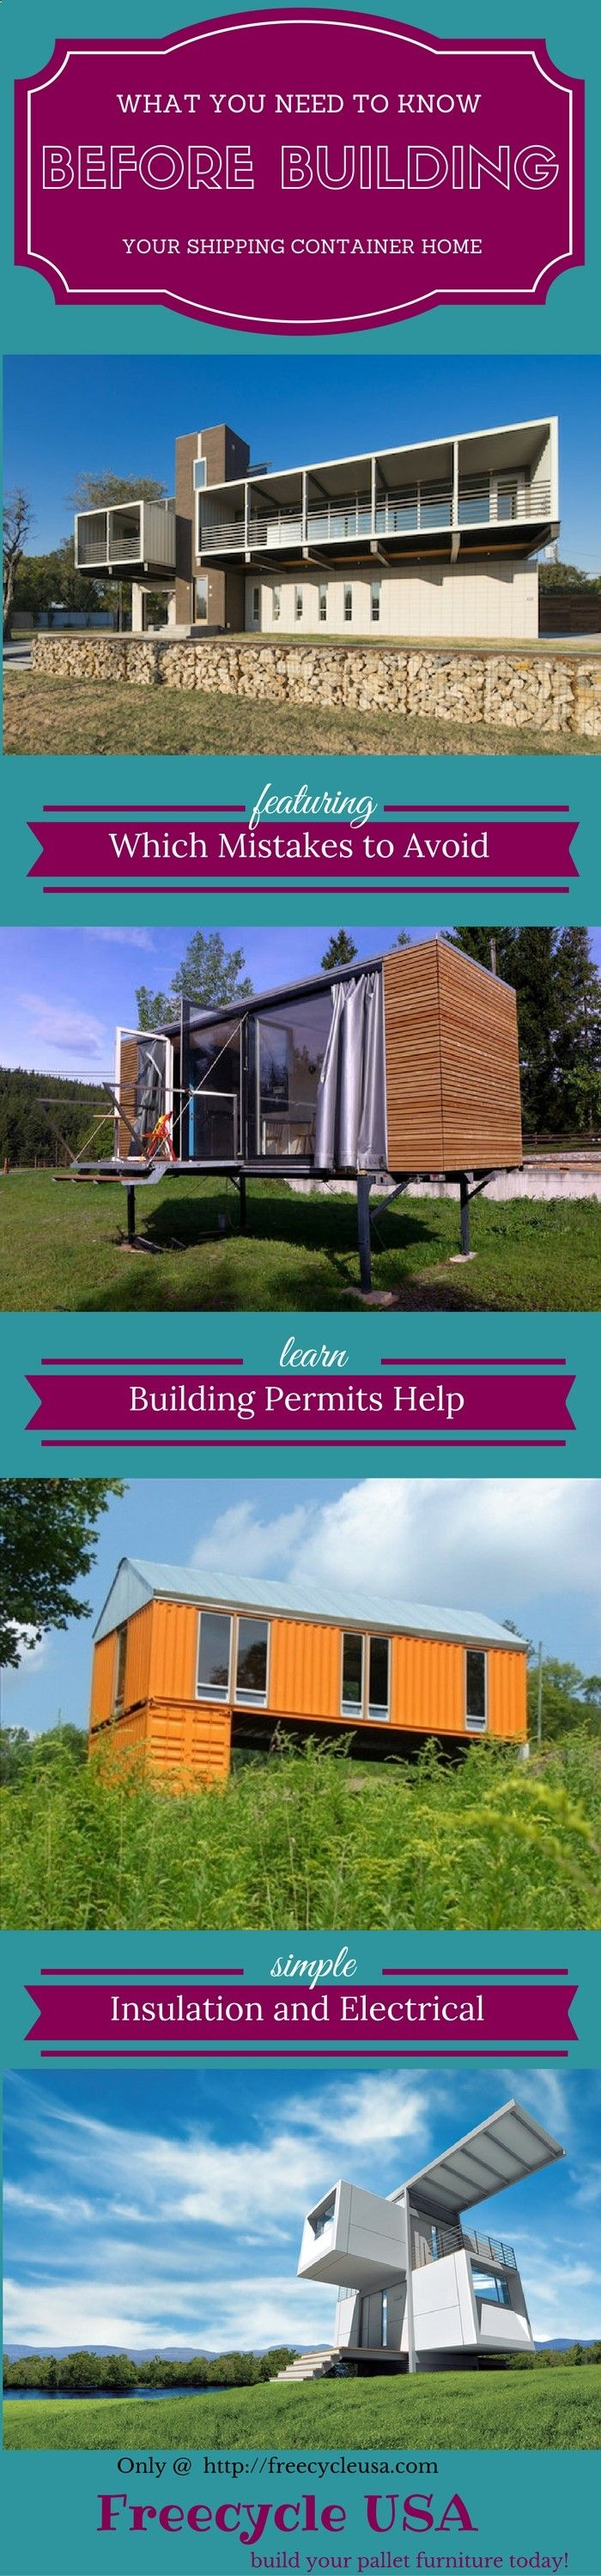 Superb How To Build Your Own Shipping Container Home When it es to building your own shipping